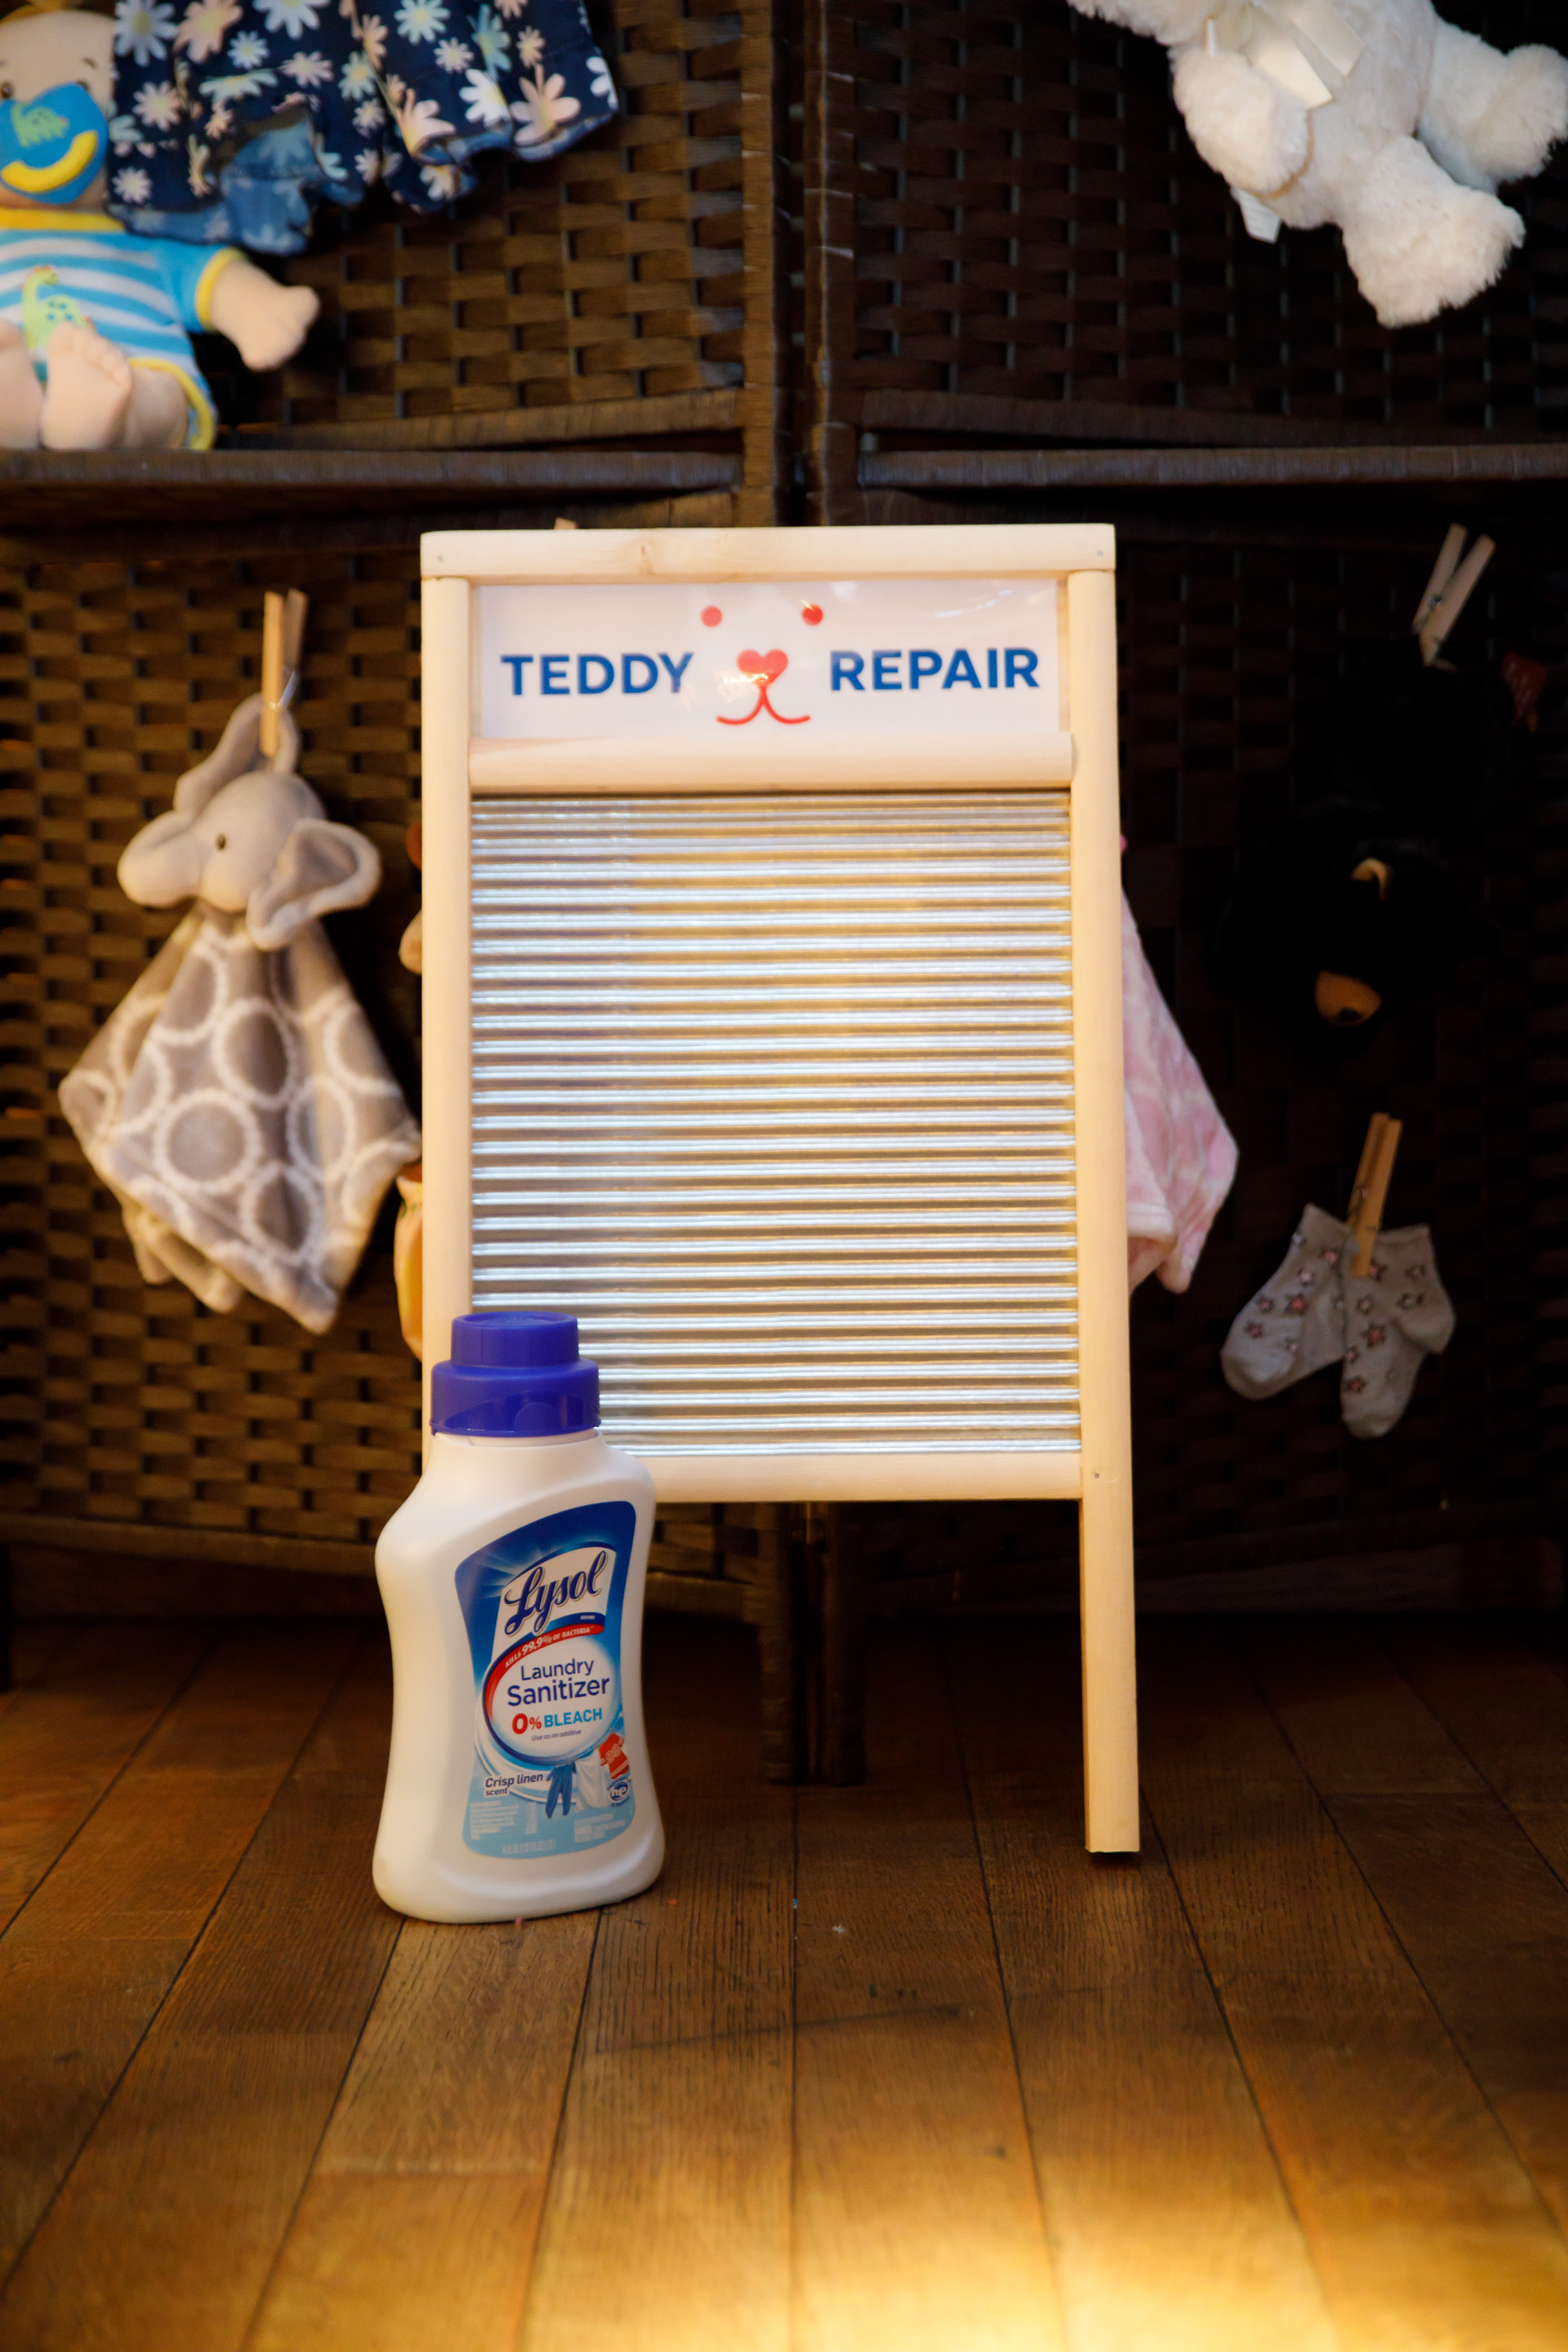 Lysol Teddy Repair Event